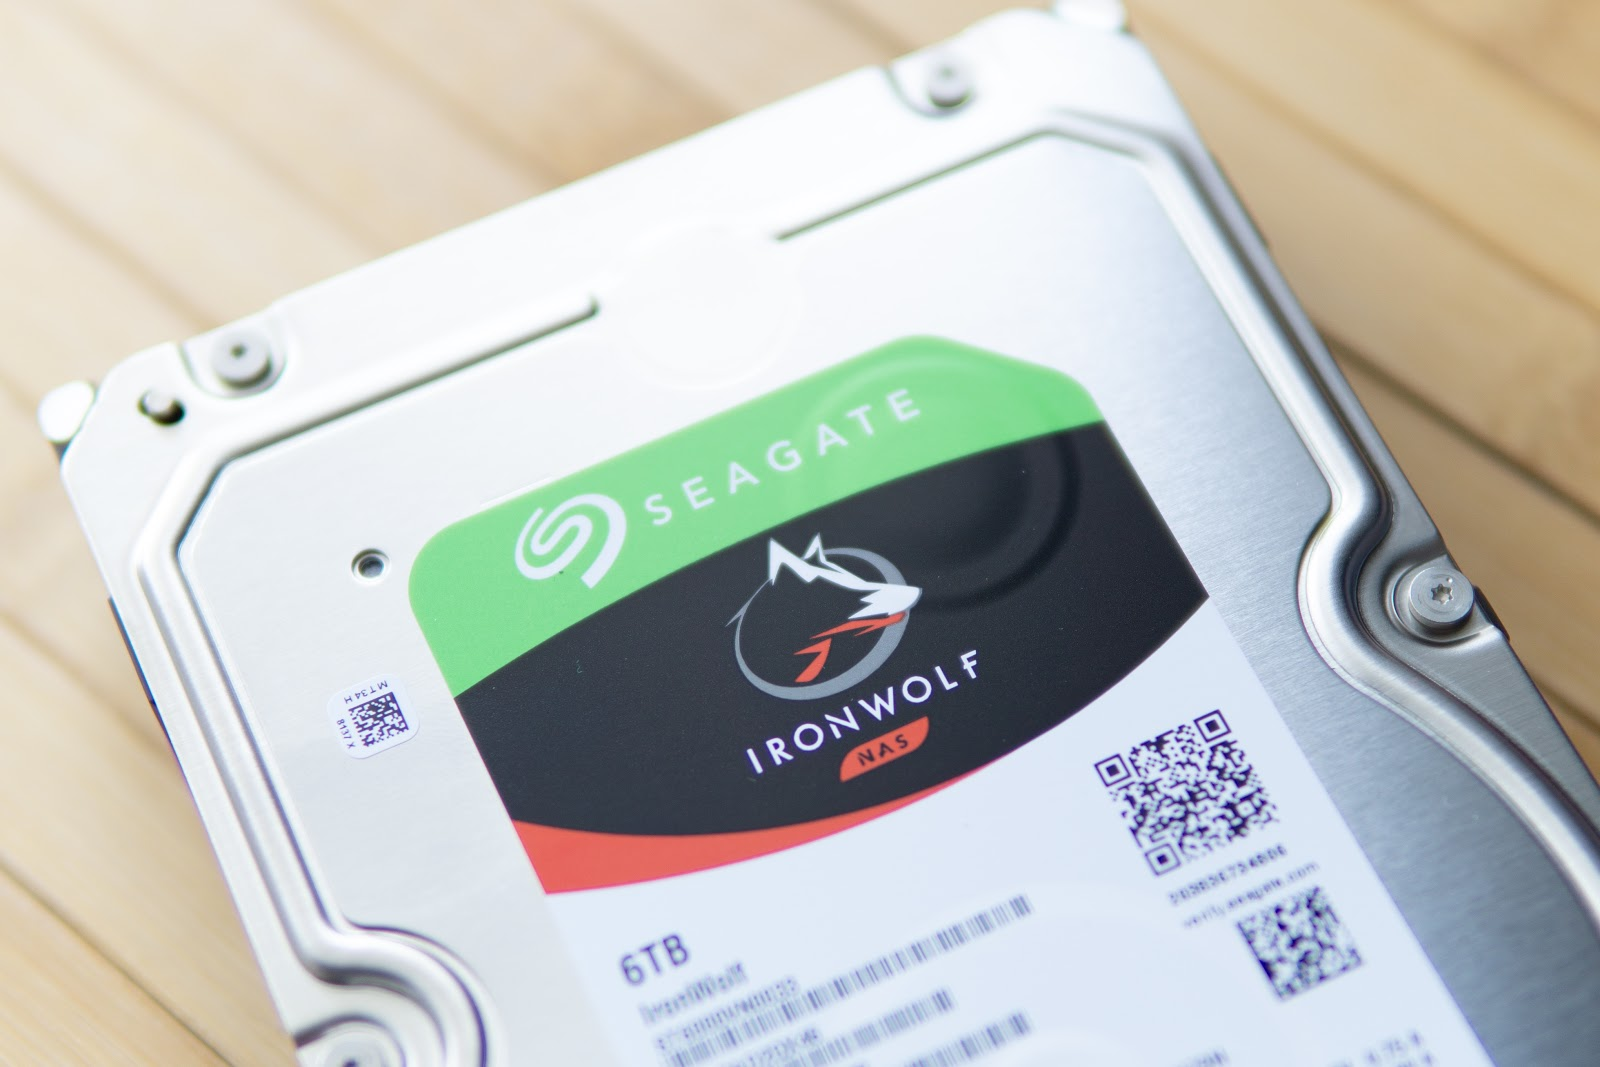 Hard Drives for use in my Synology NAS